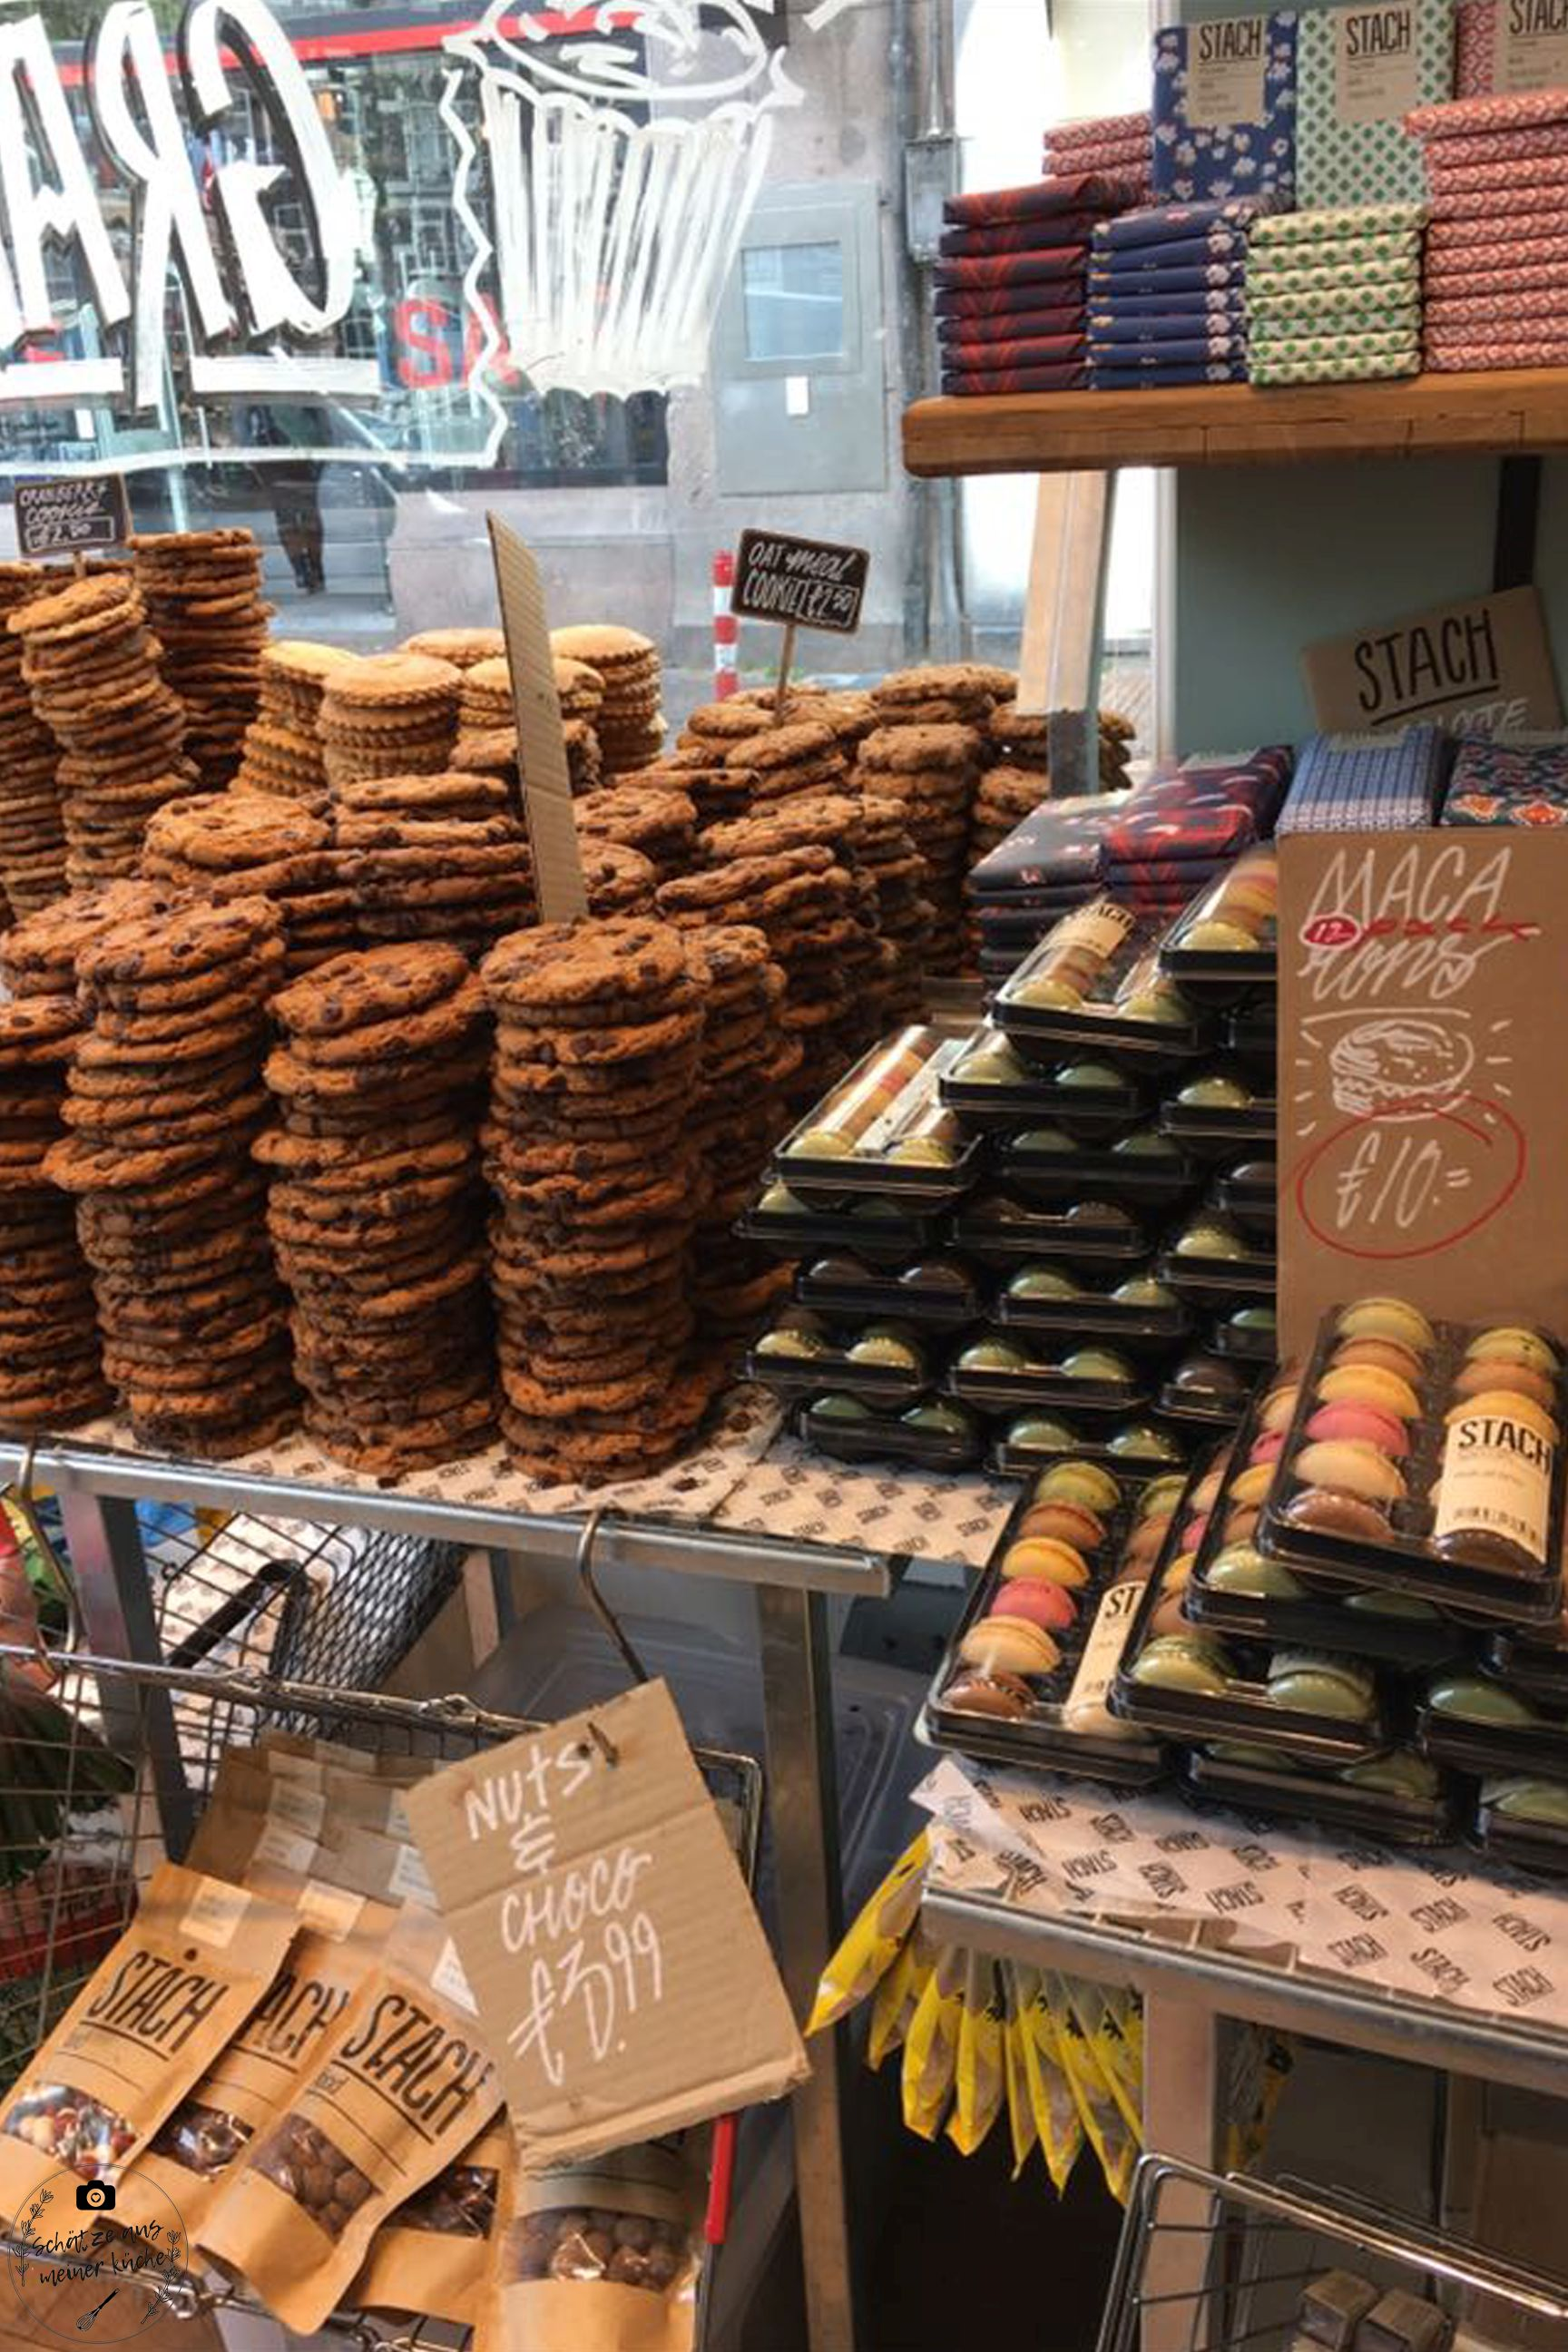 STACH Snacks Cookies Amsterdam